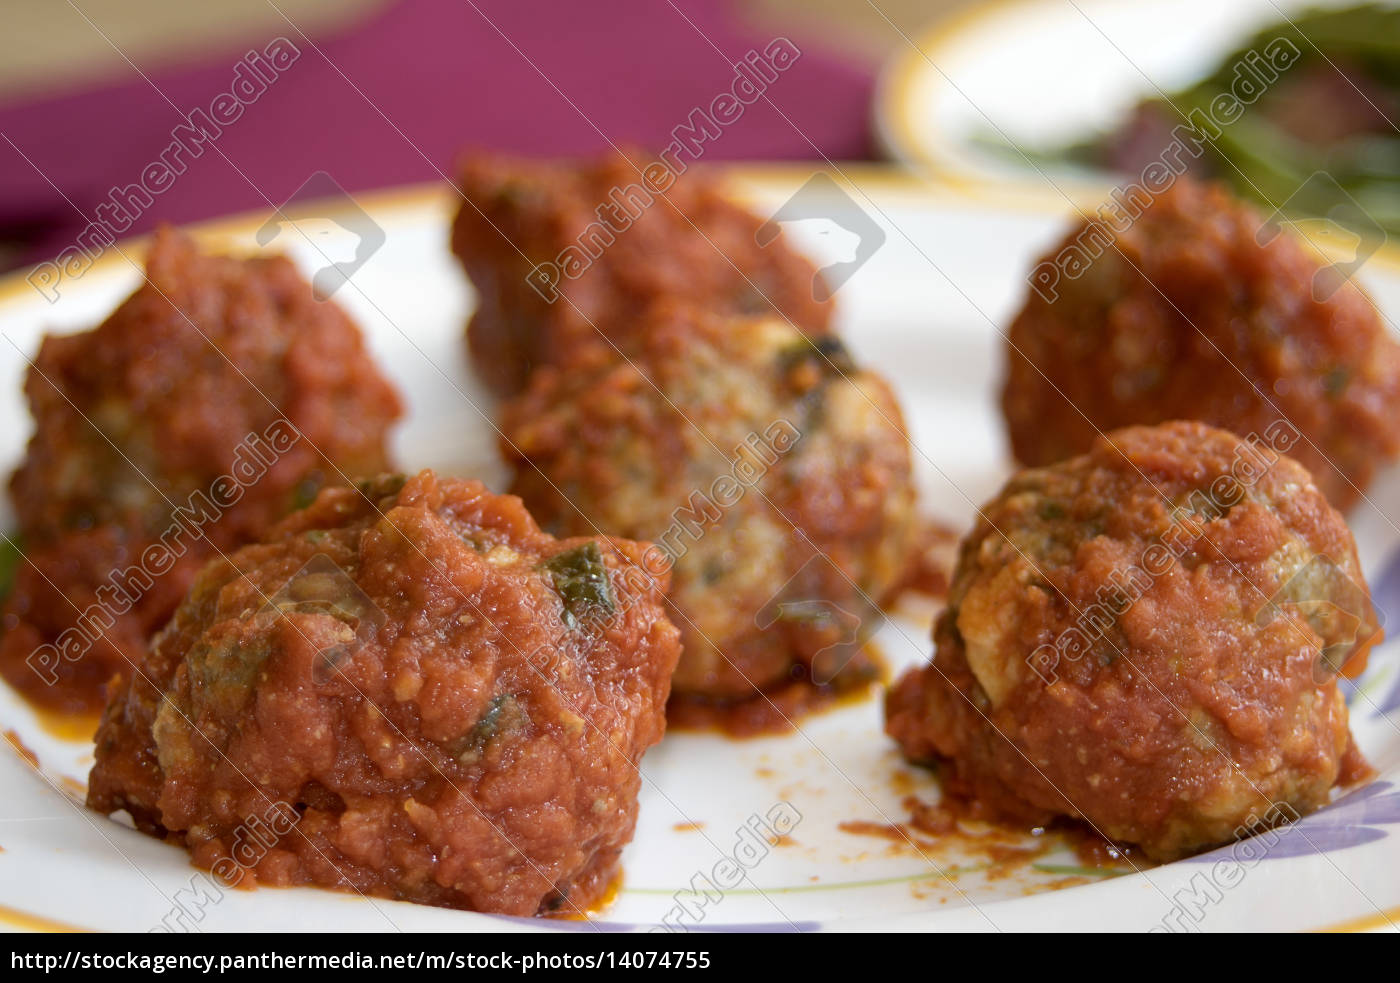 meat, balls, of, pig - 14074755